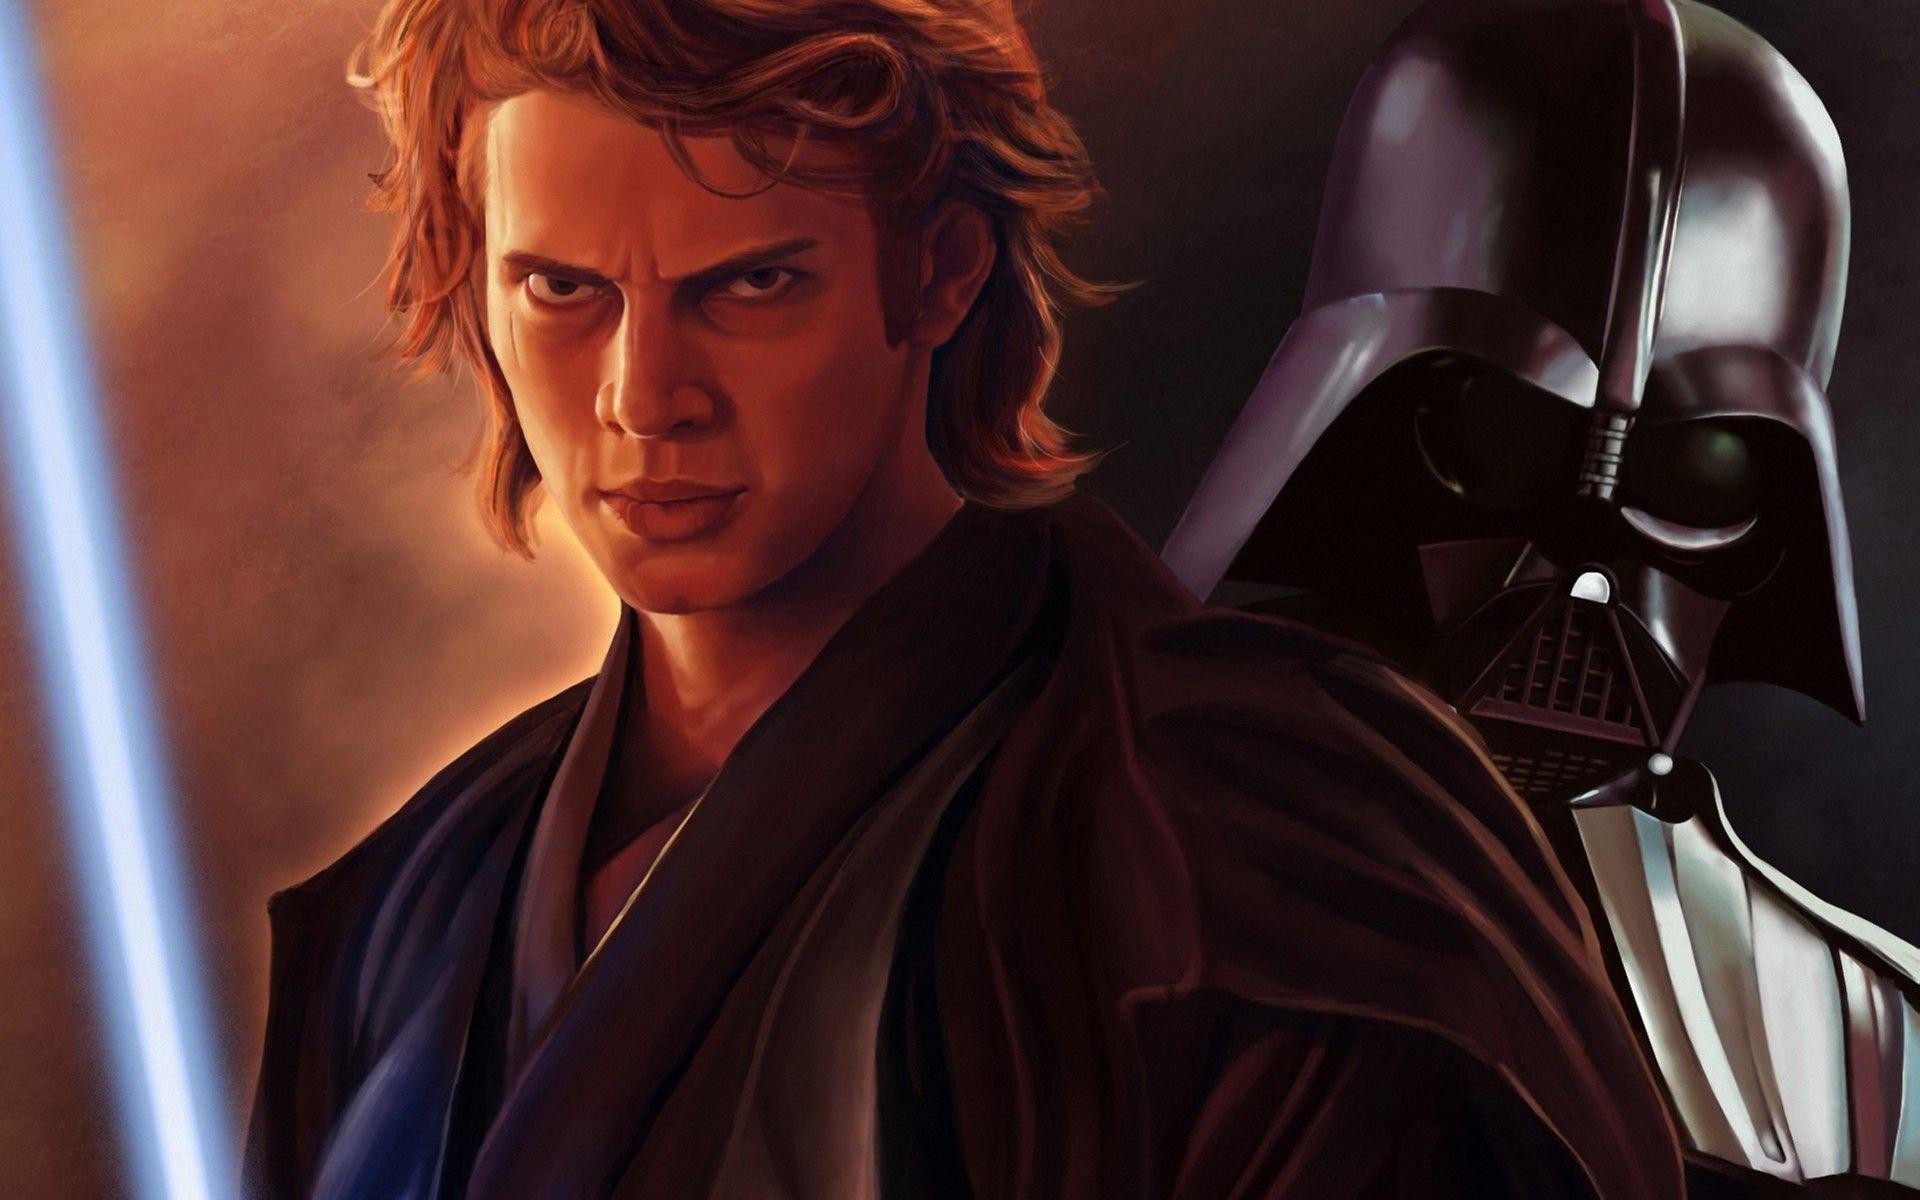 1920x1200 wallpaper.wiki-Anakin-Skywalker-Desktop-Wallpaper-PIC-WPC0012871